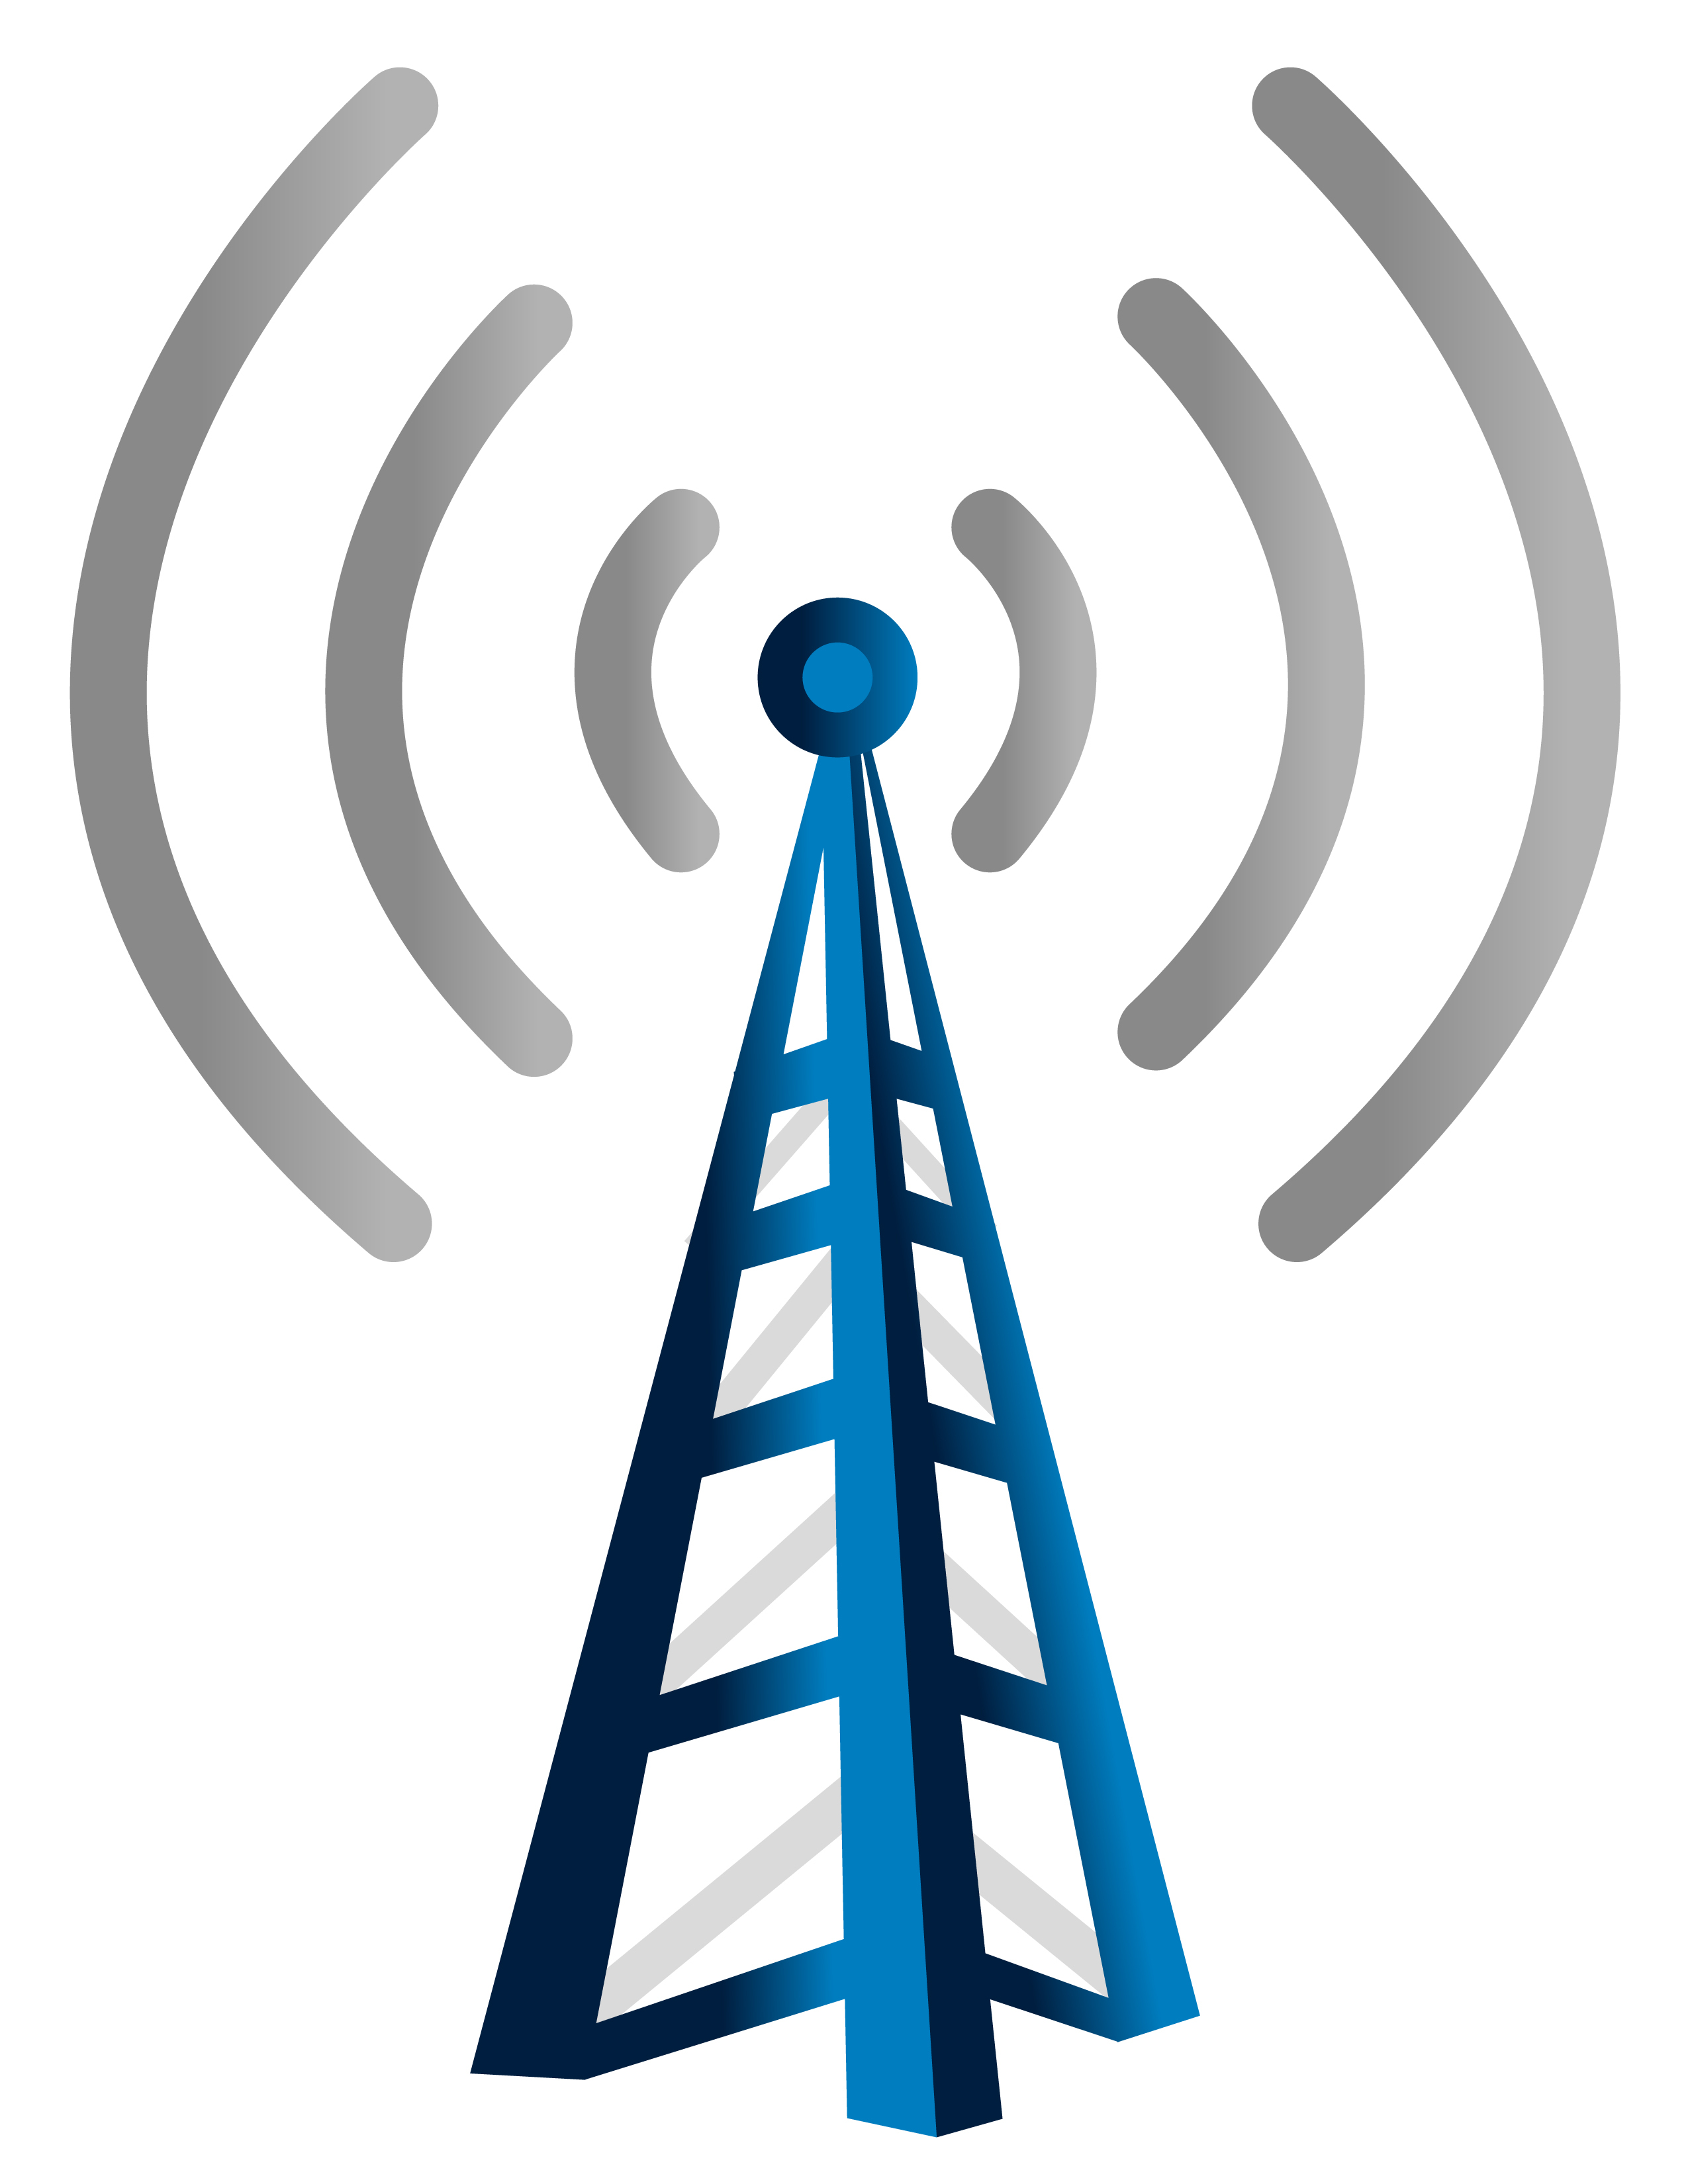 Cell Tower Icon Clipart Best-Cell Tower Icon Clipart Best-11